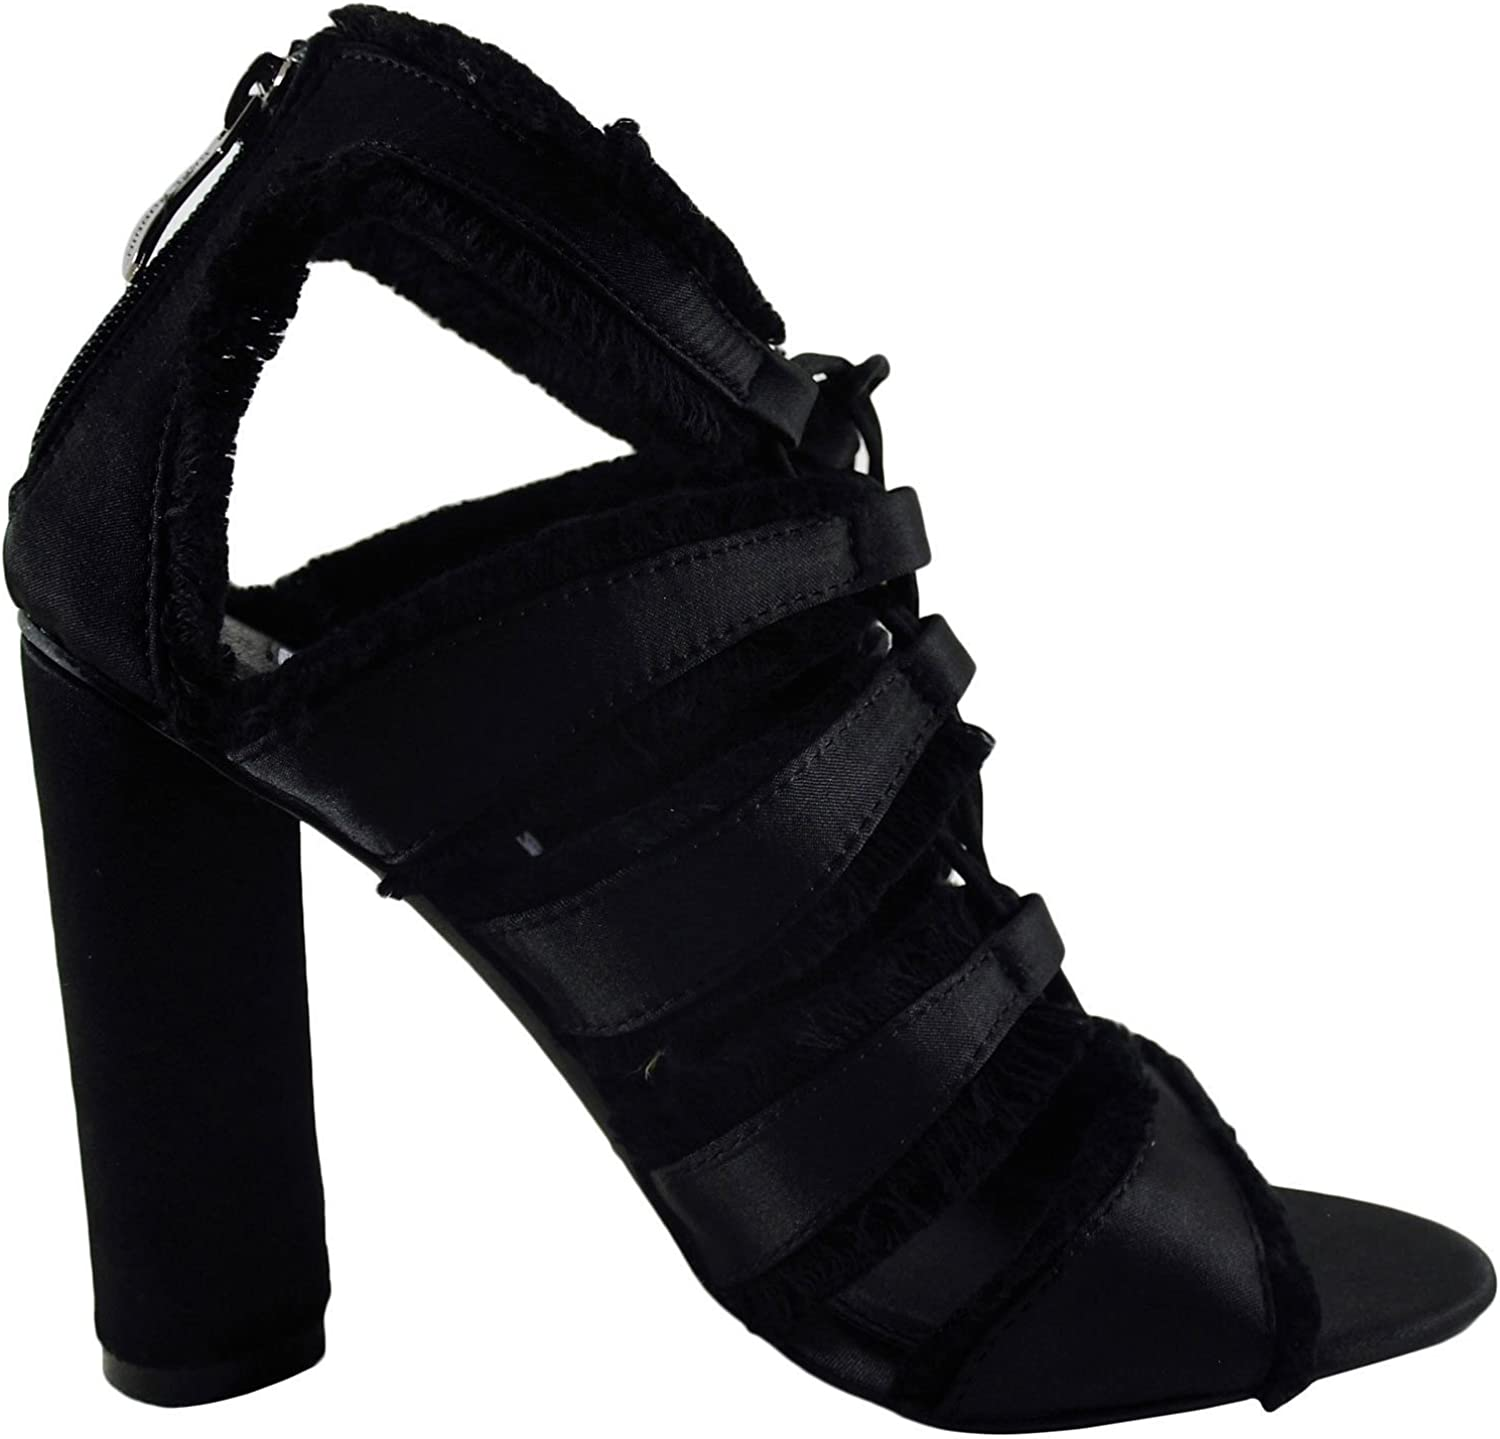 CAPE ROBBIN Maura 5 Women's Fringed Lace Up Caged Heel